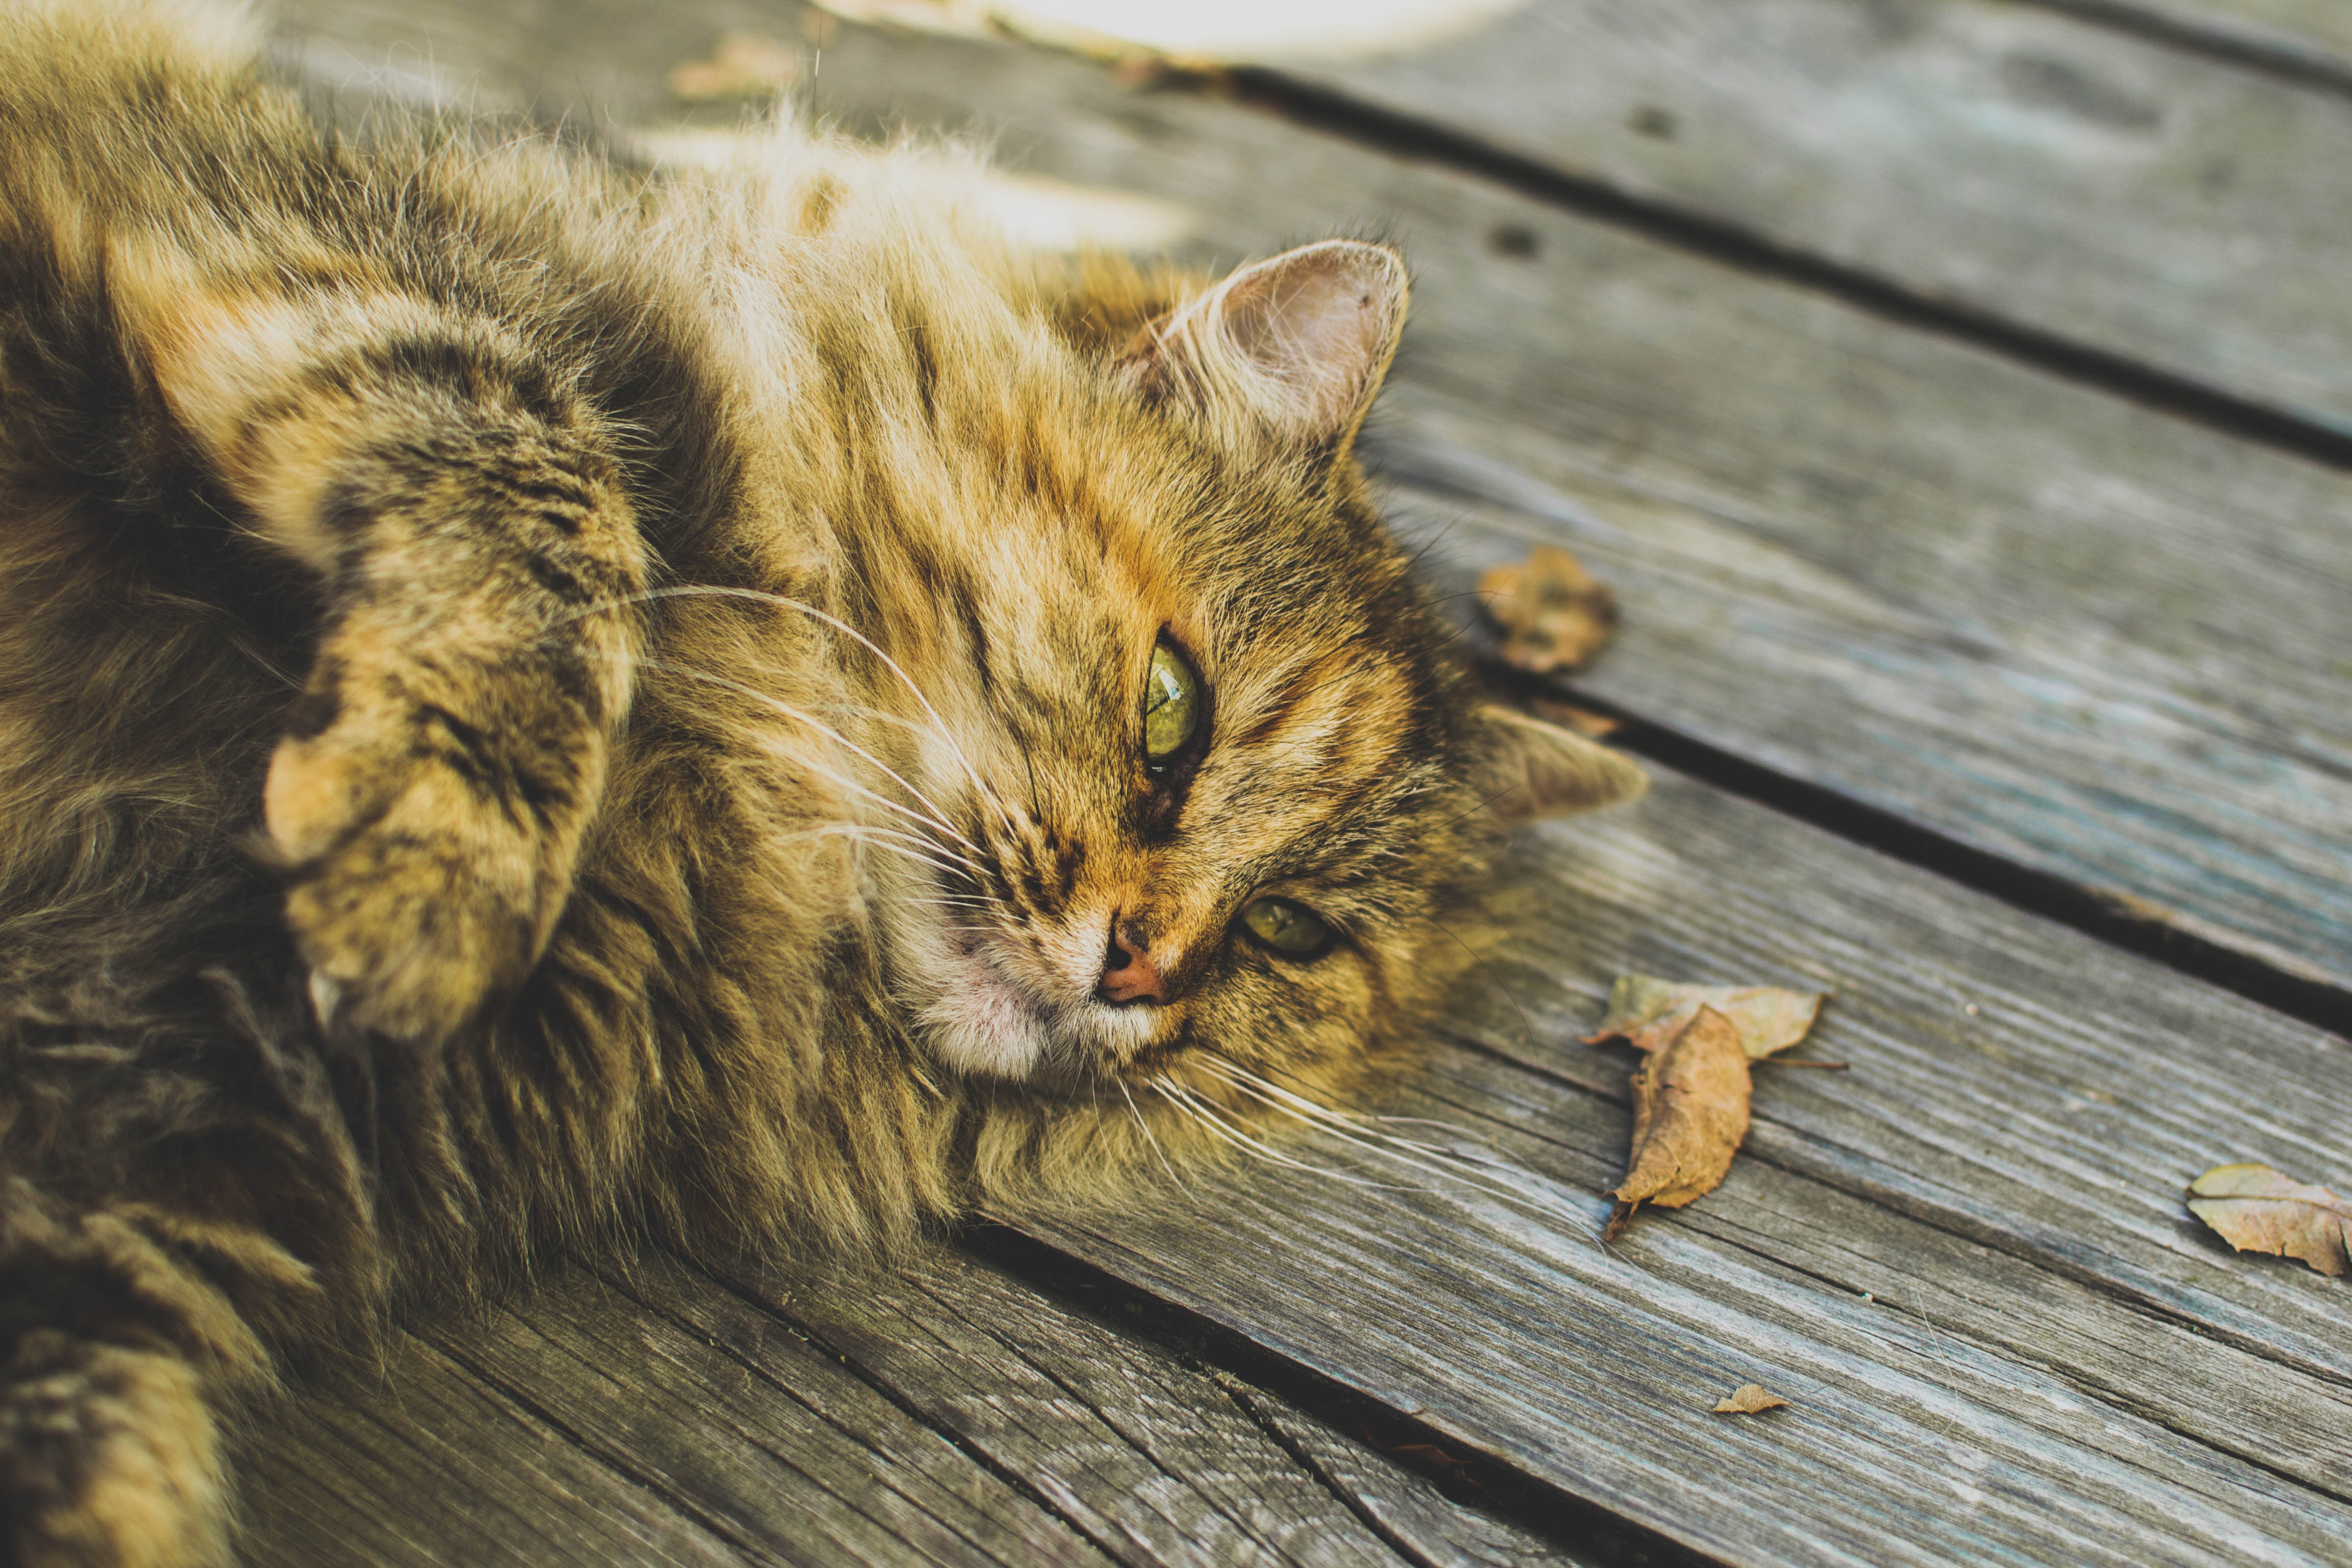 Long haired cat lying on the wooden boards with fallen leaves